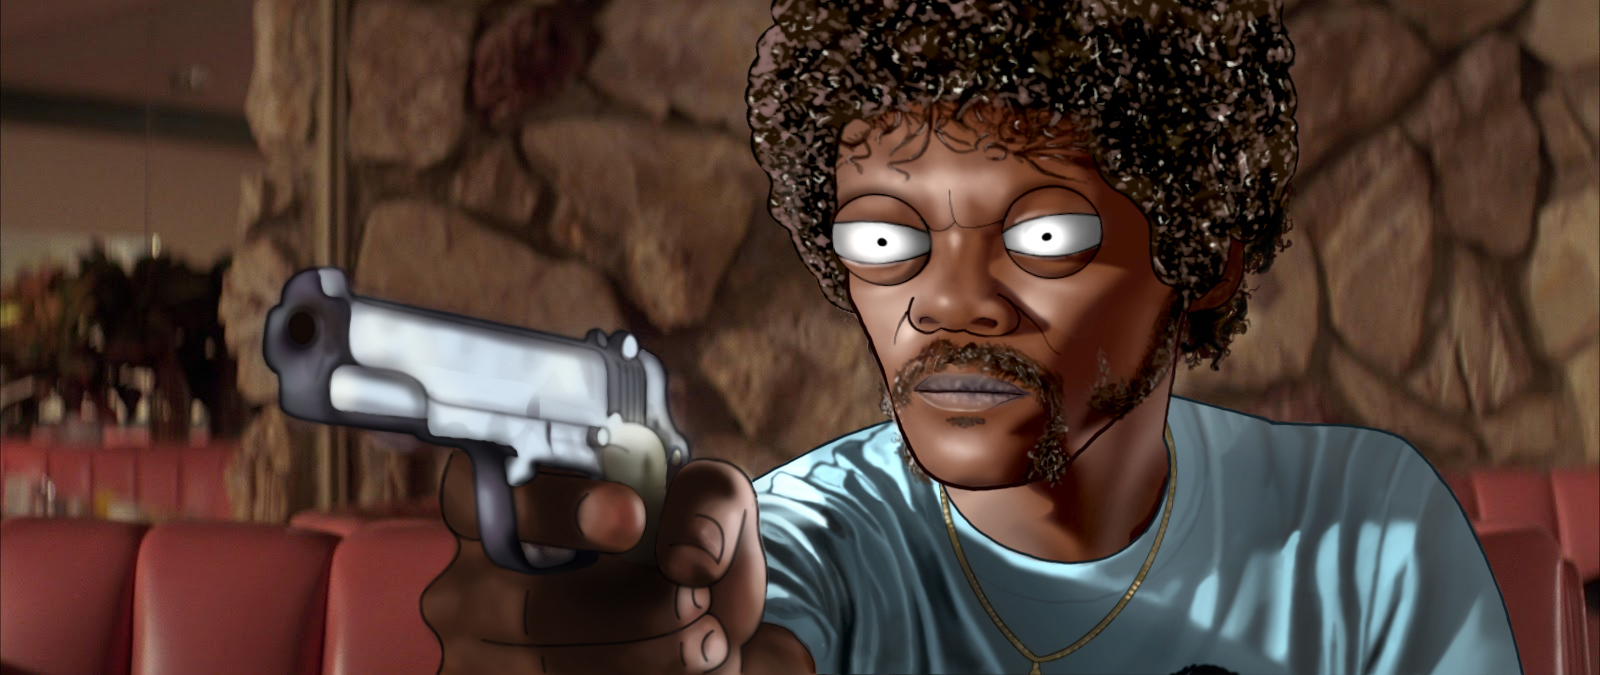 Photoshop, Illustrator   A cartoon homage to my all time favorite movie, Pulp Fiction.